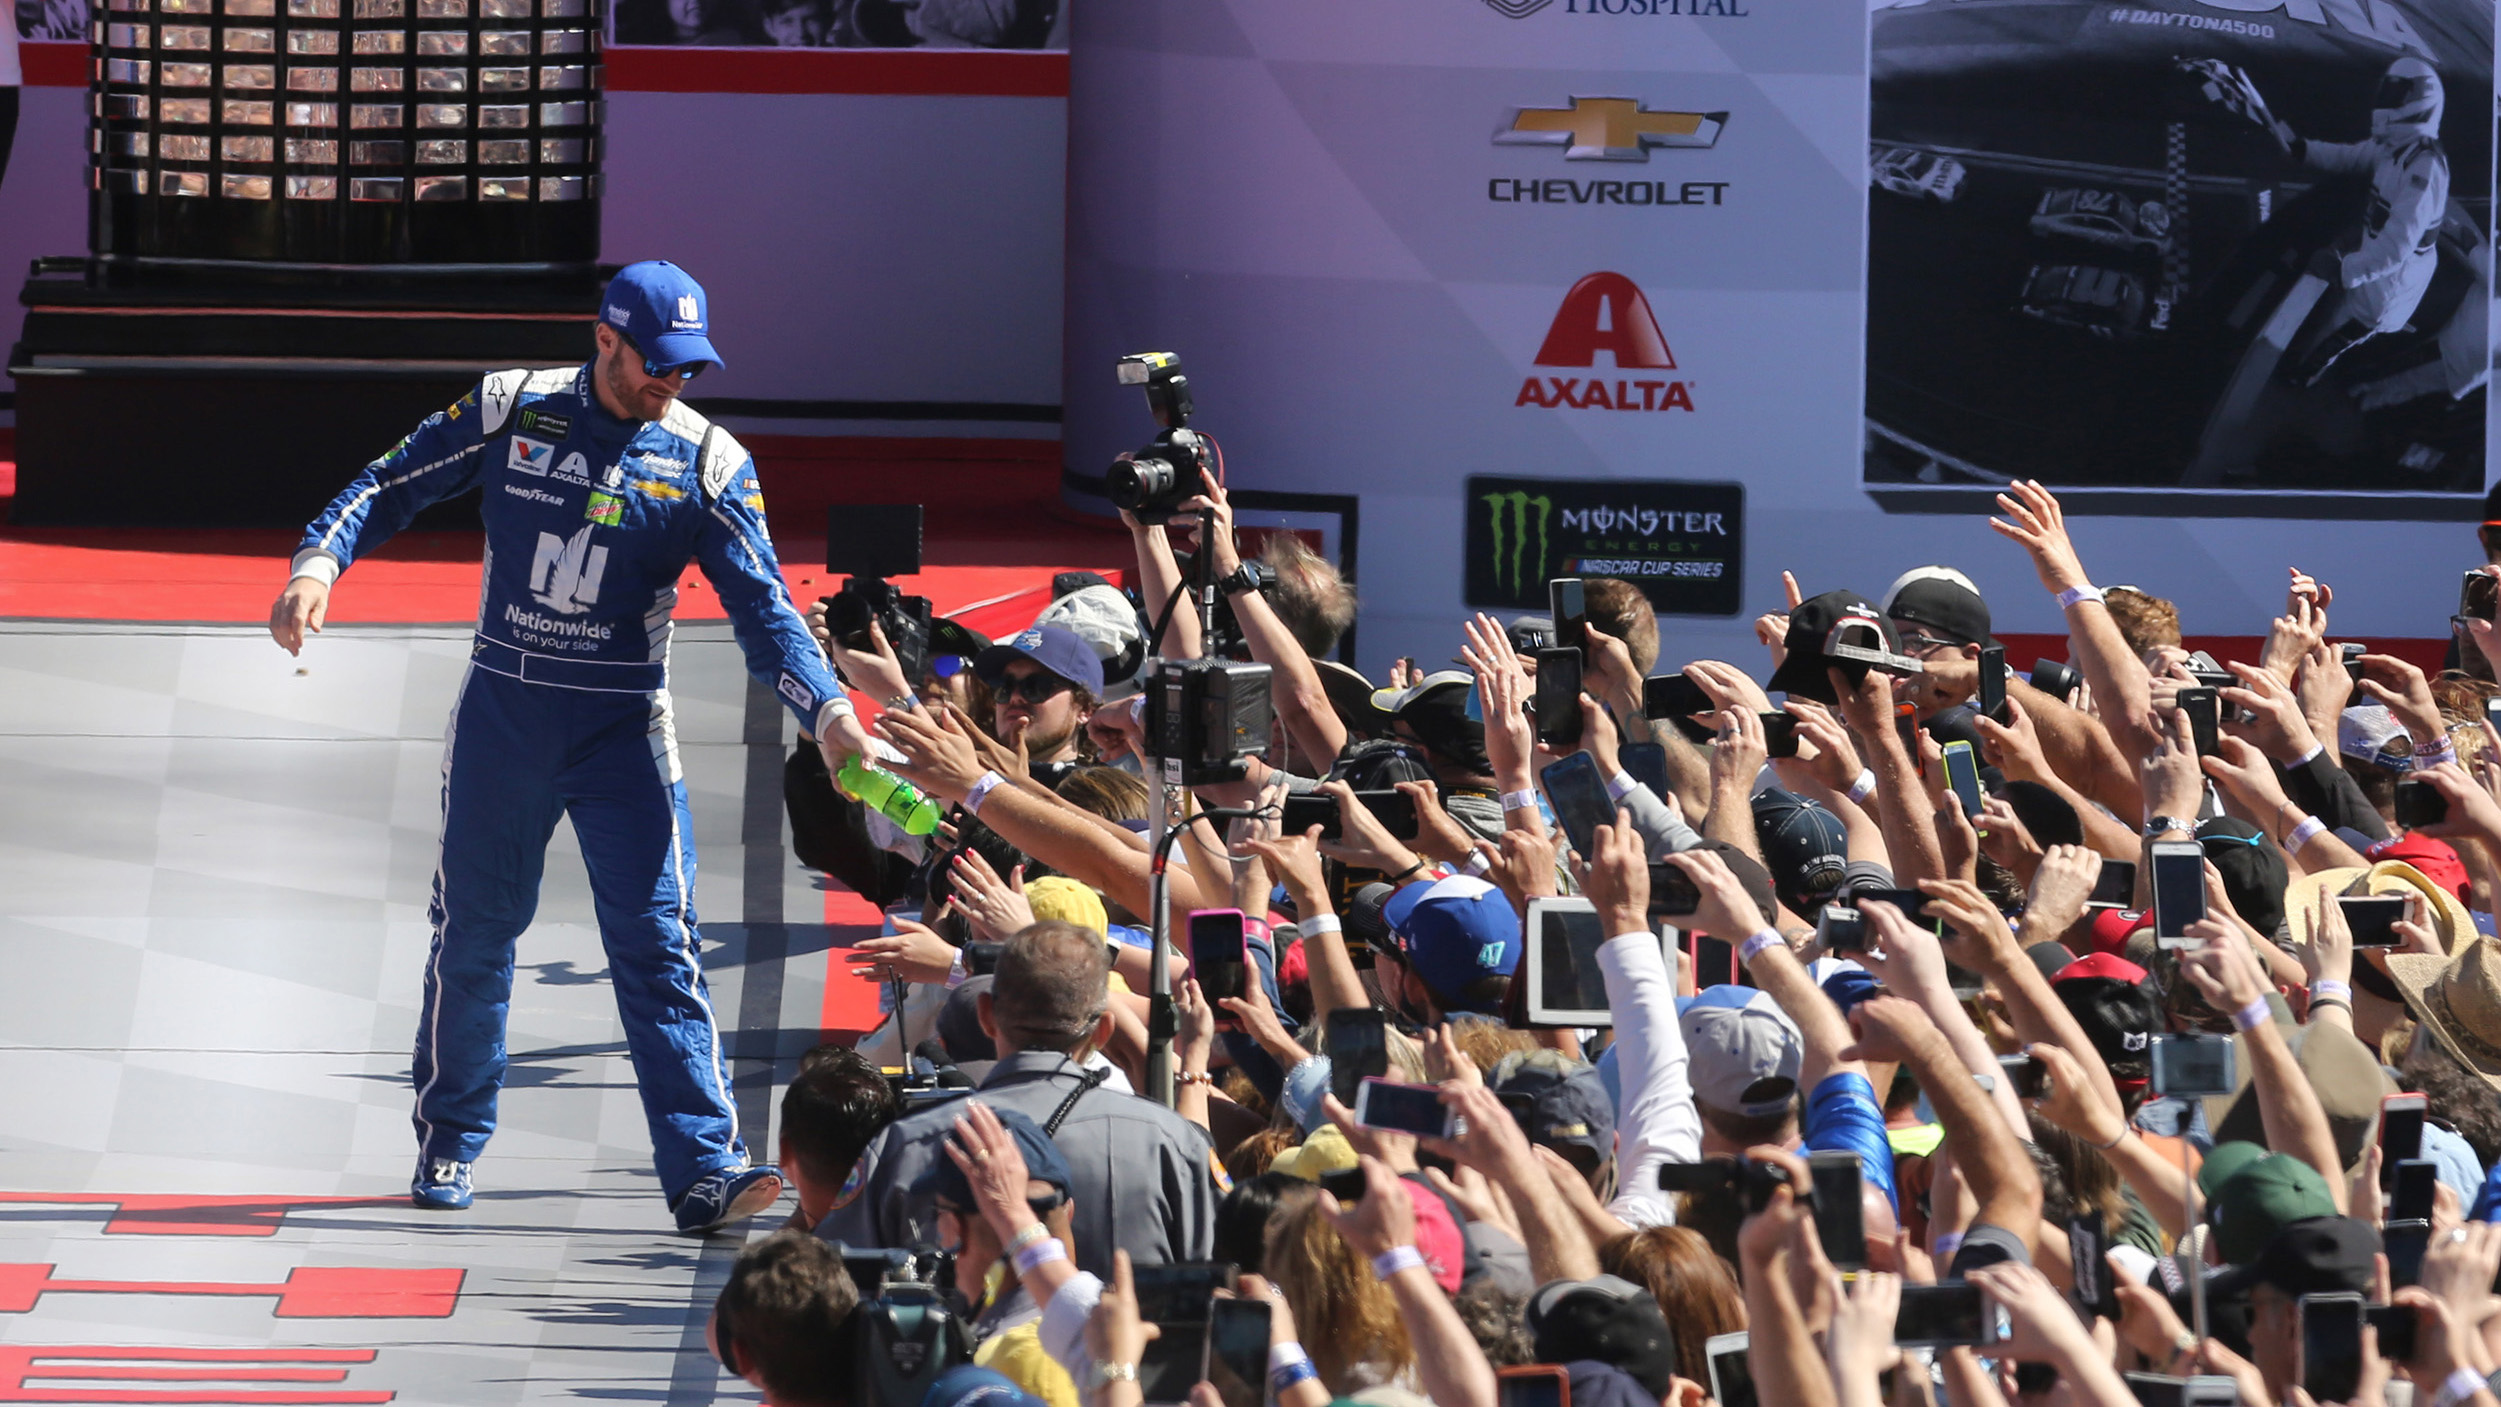 Dale Earnhardt Jr. hands off a bottle of soda to fans during driver introductions at the Daytona 500 on Sunday, Feb. 26, 2017 at Daytona International Speedway in Daytona Beach, Fla. (Joe Burbank/Orlando Sentinel/TNS via Getty Images)